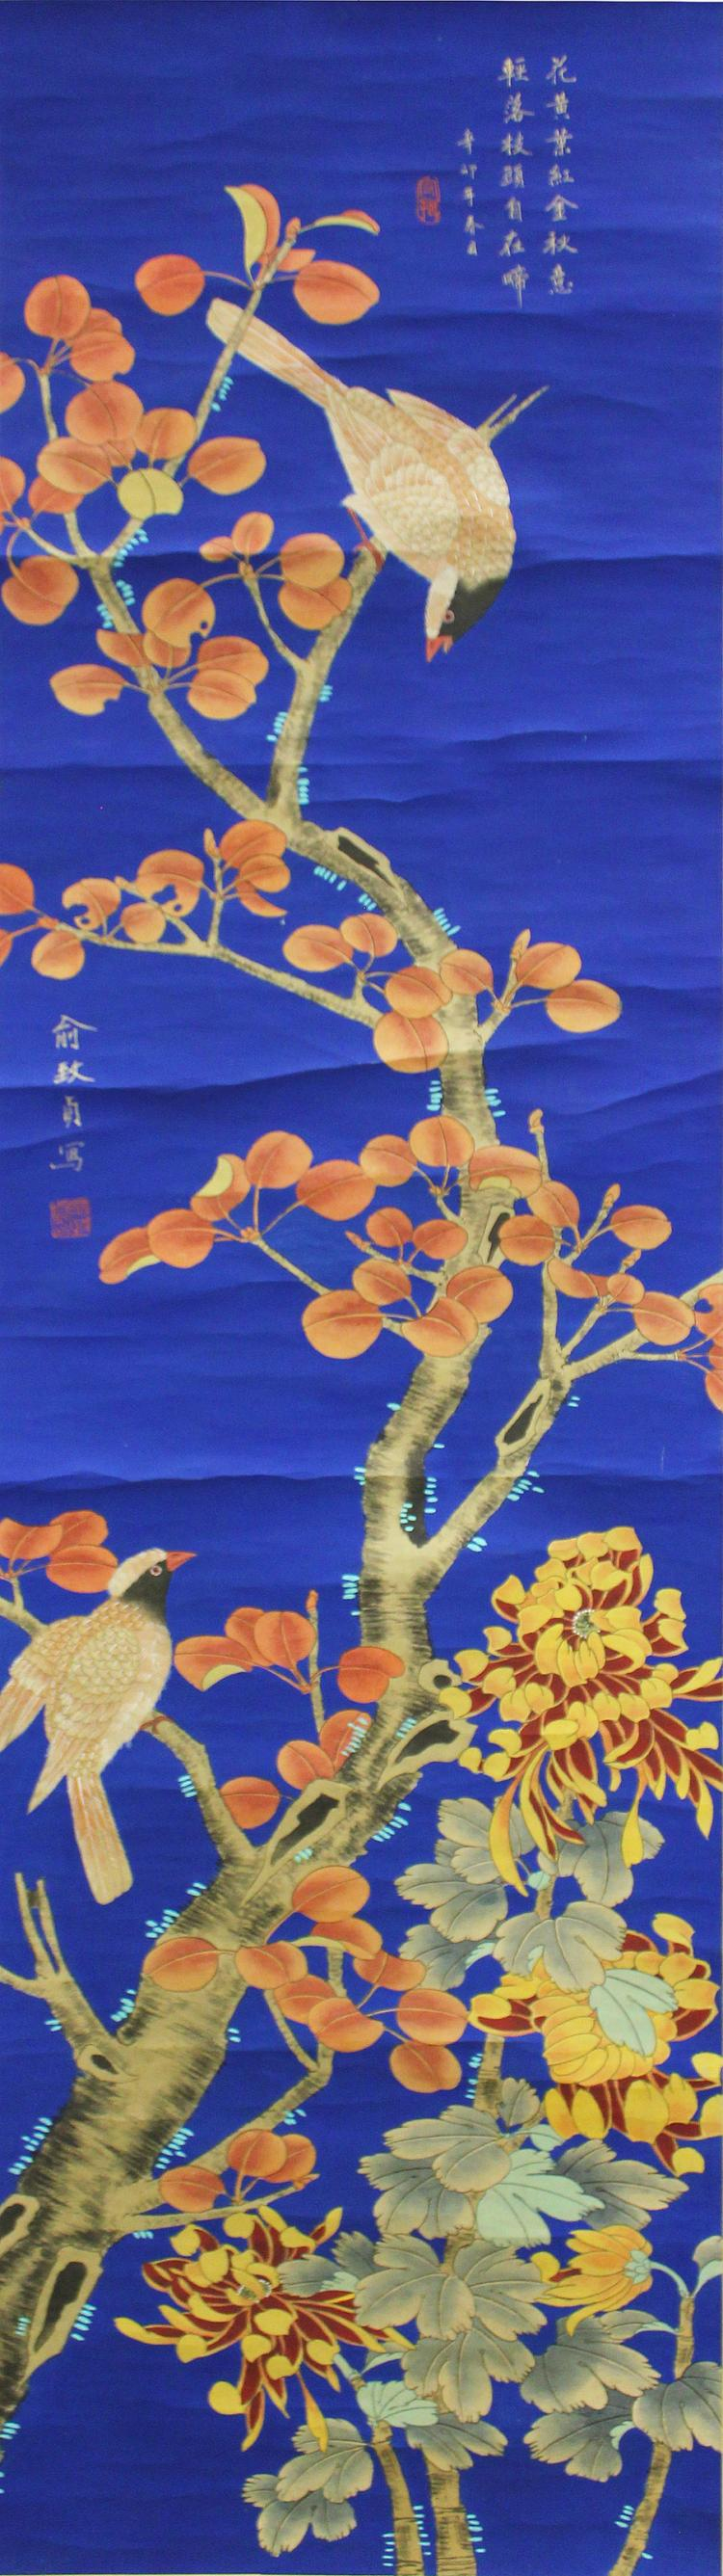 YU ZHIZHEN (1915 - 1995) CHINESE FLOWER AND BIRD PAINTING